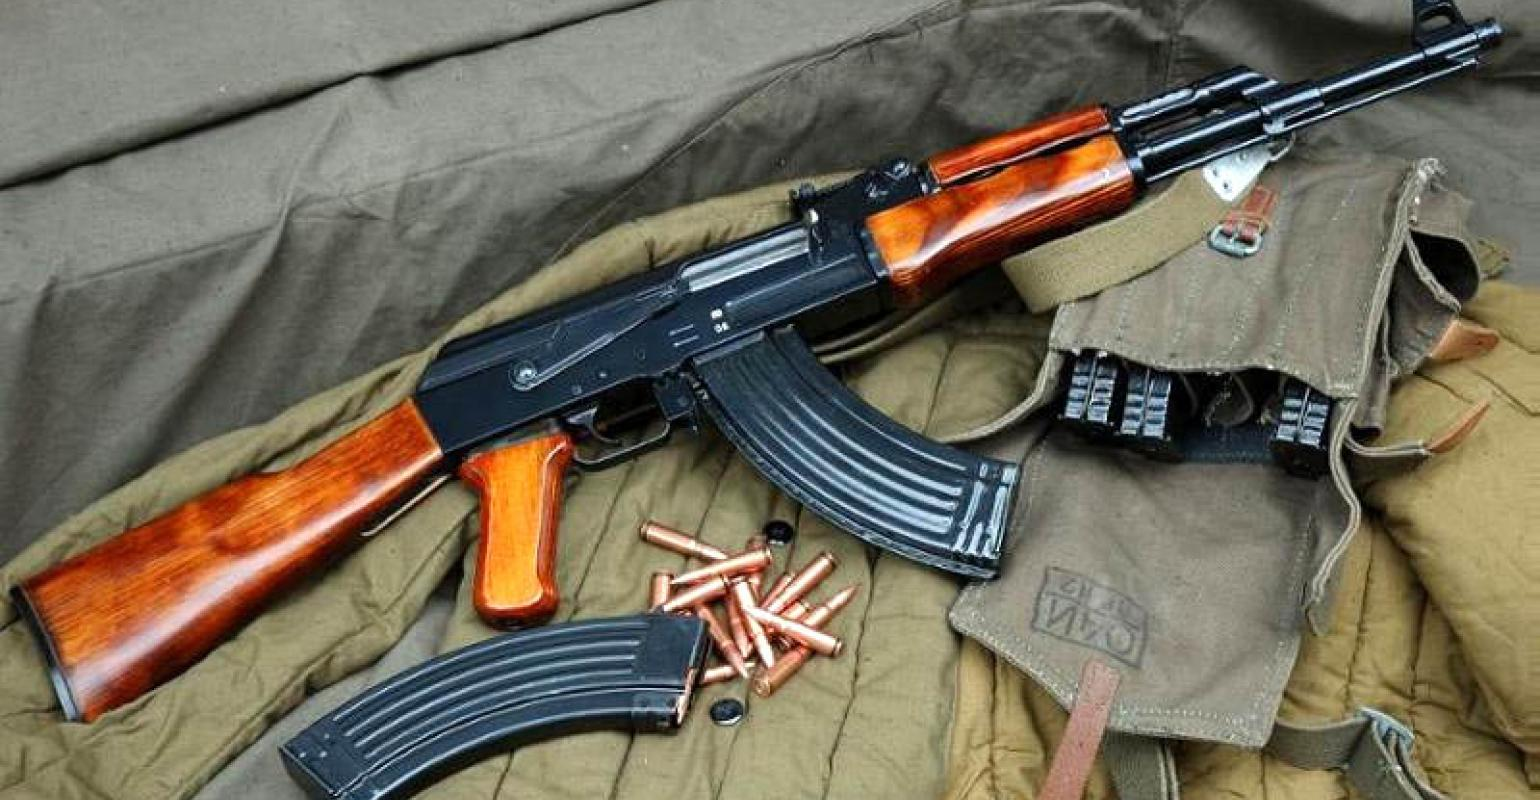 soldier supplies ak47 rifle ammunition to armed robbers zimbabwe